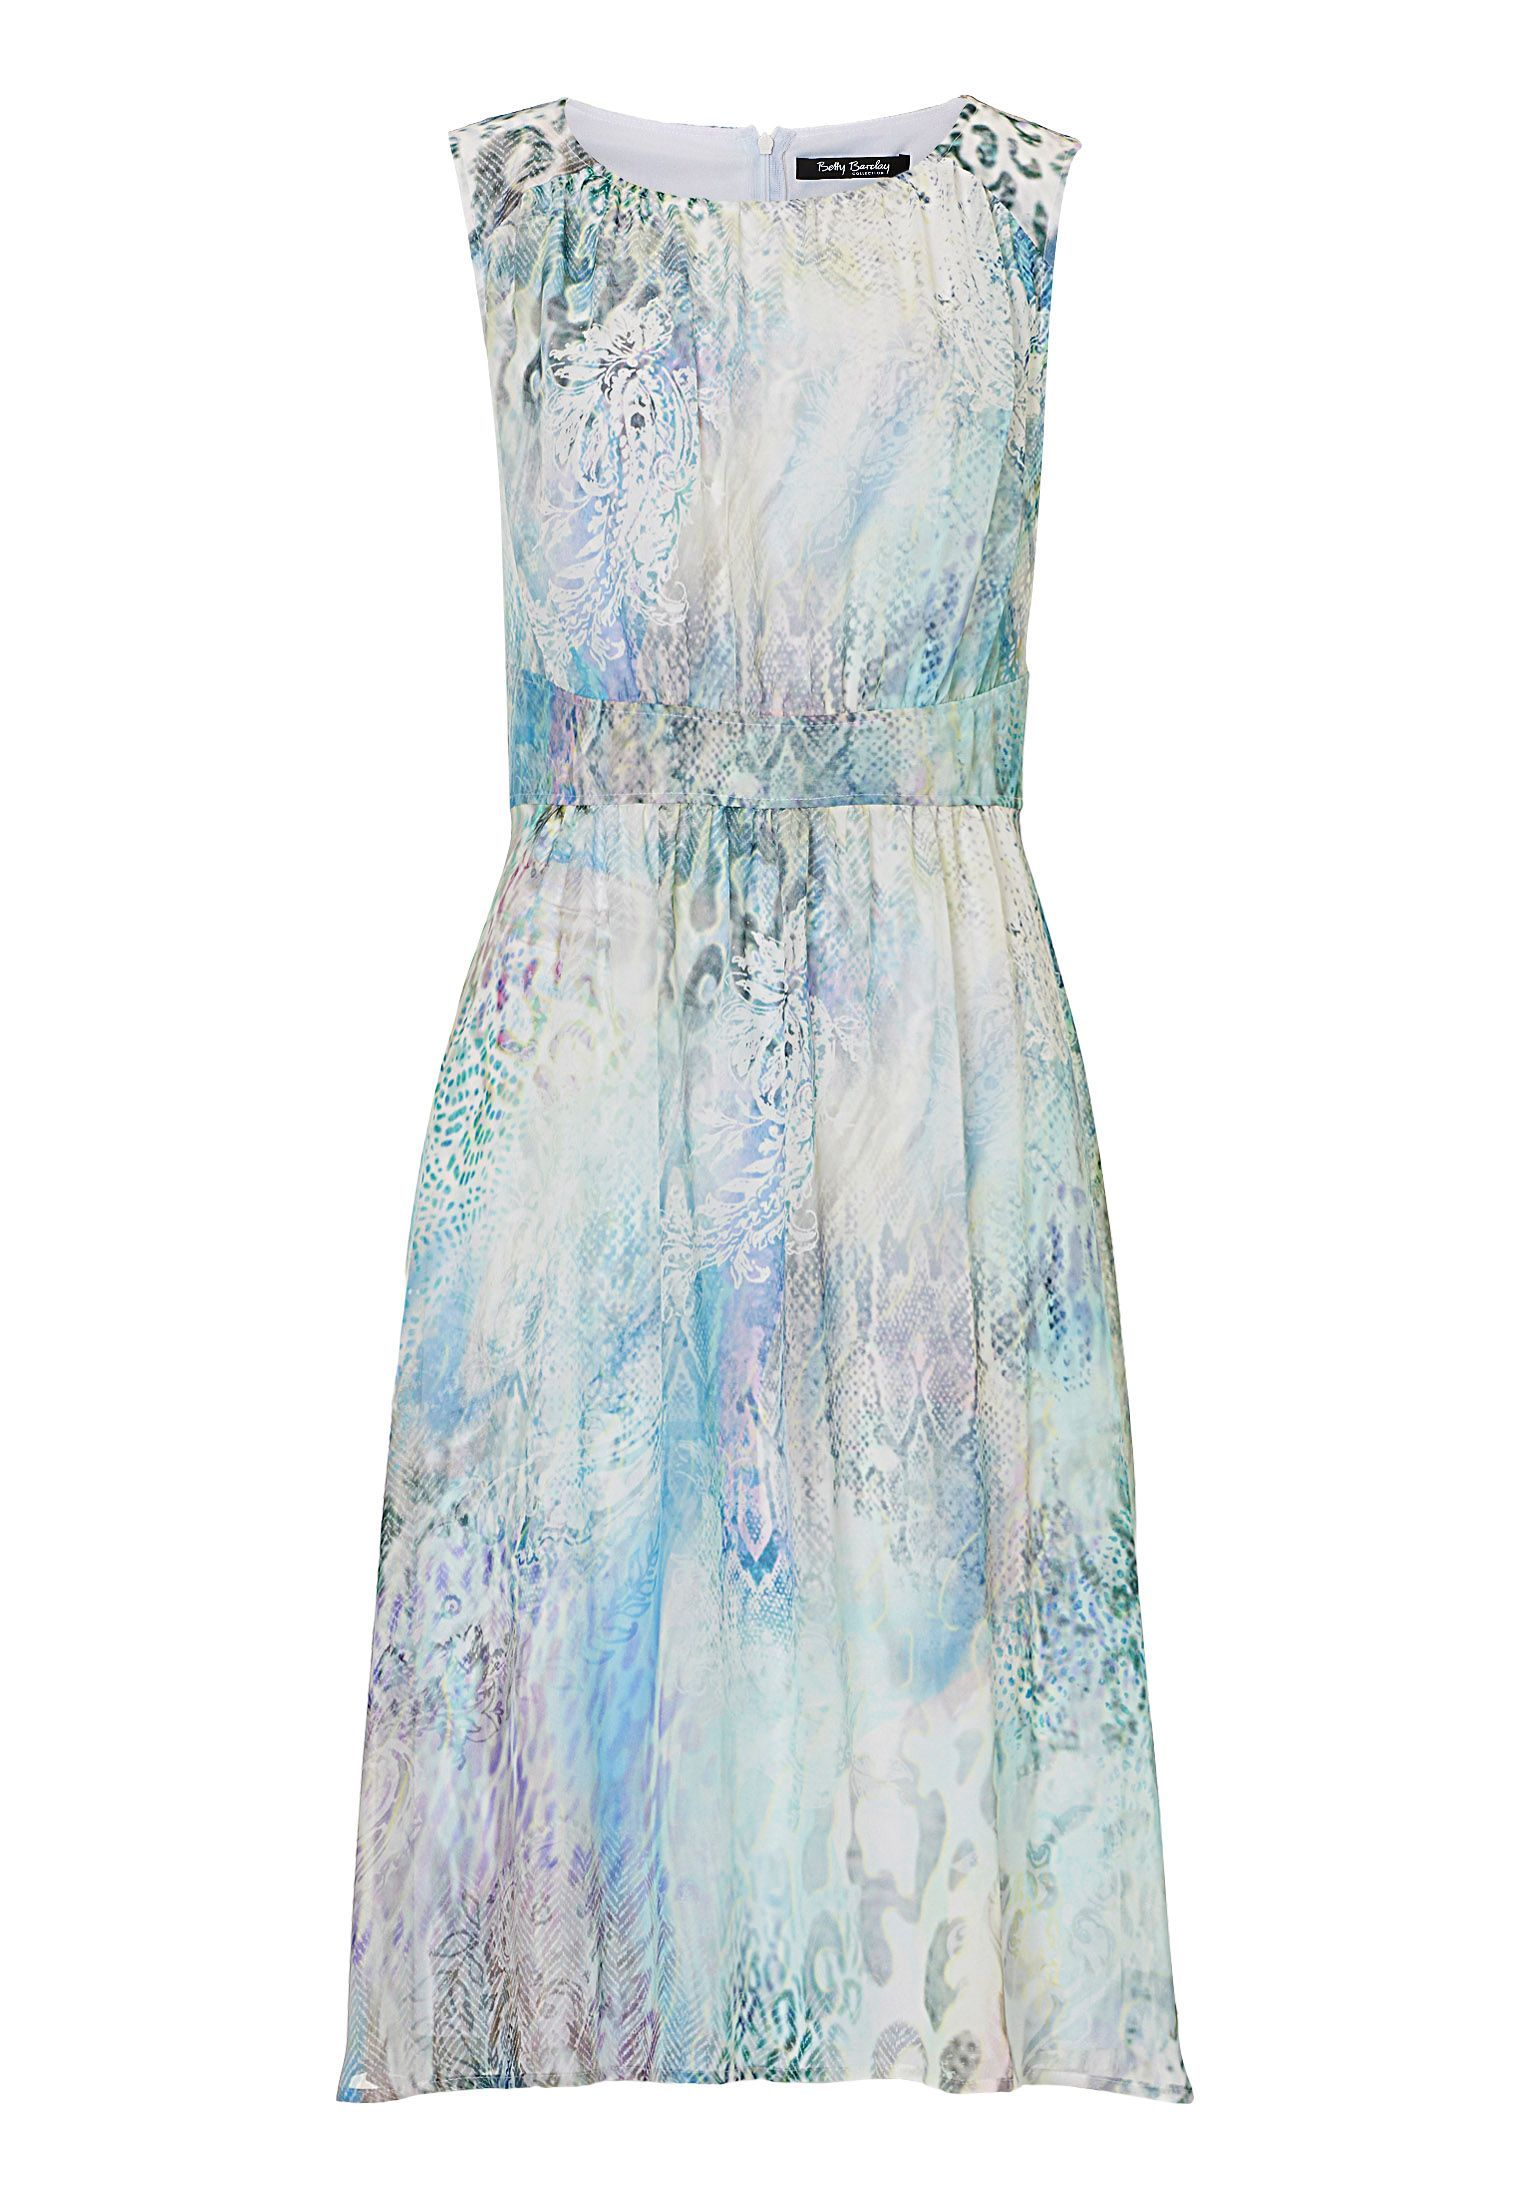 5a7a811585e4 Buy your Betty Barclay Printed Chiffon Dress online now at House of Fraser.  Why not